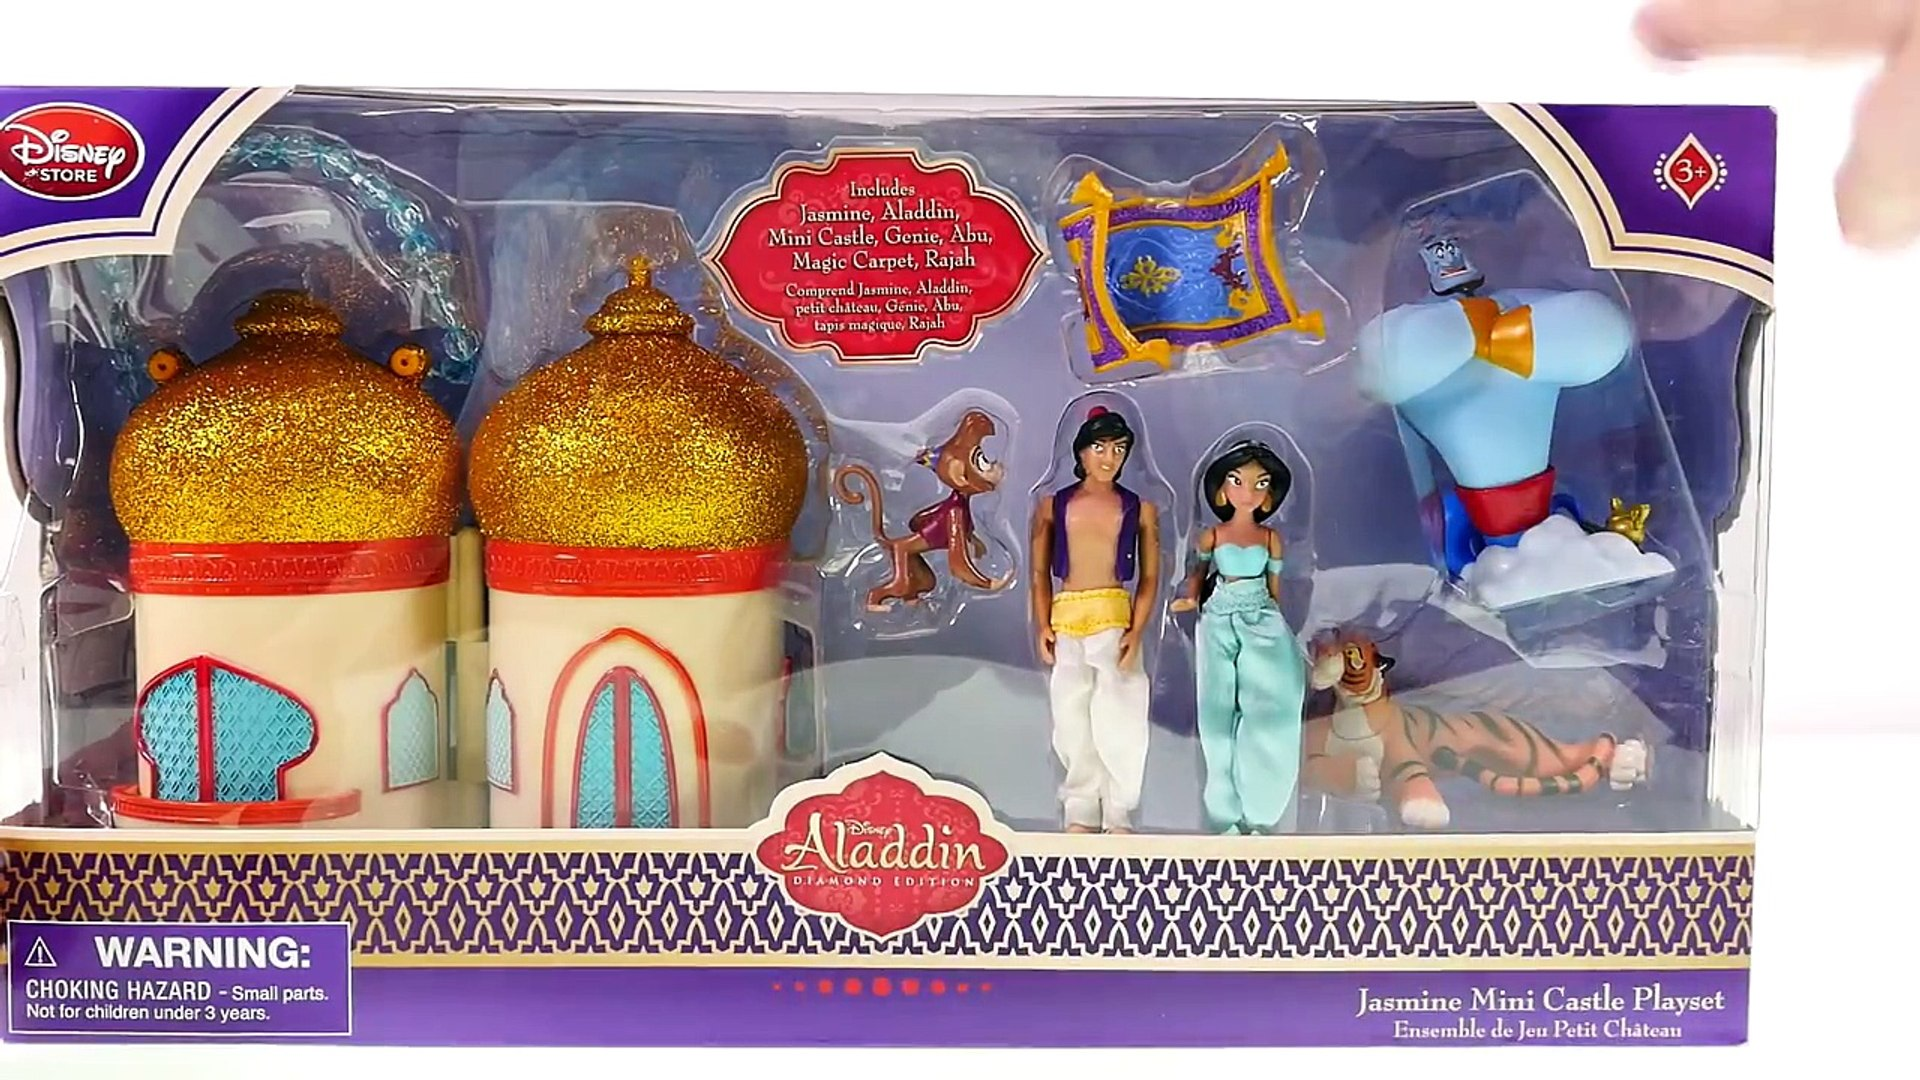 Princess Jasmine Play Doh Castle Disney Aladdin Mini Palace